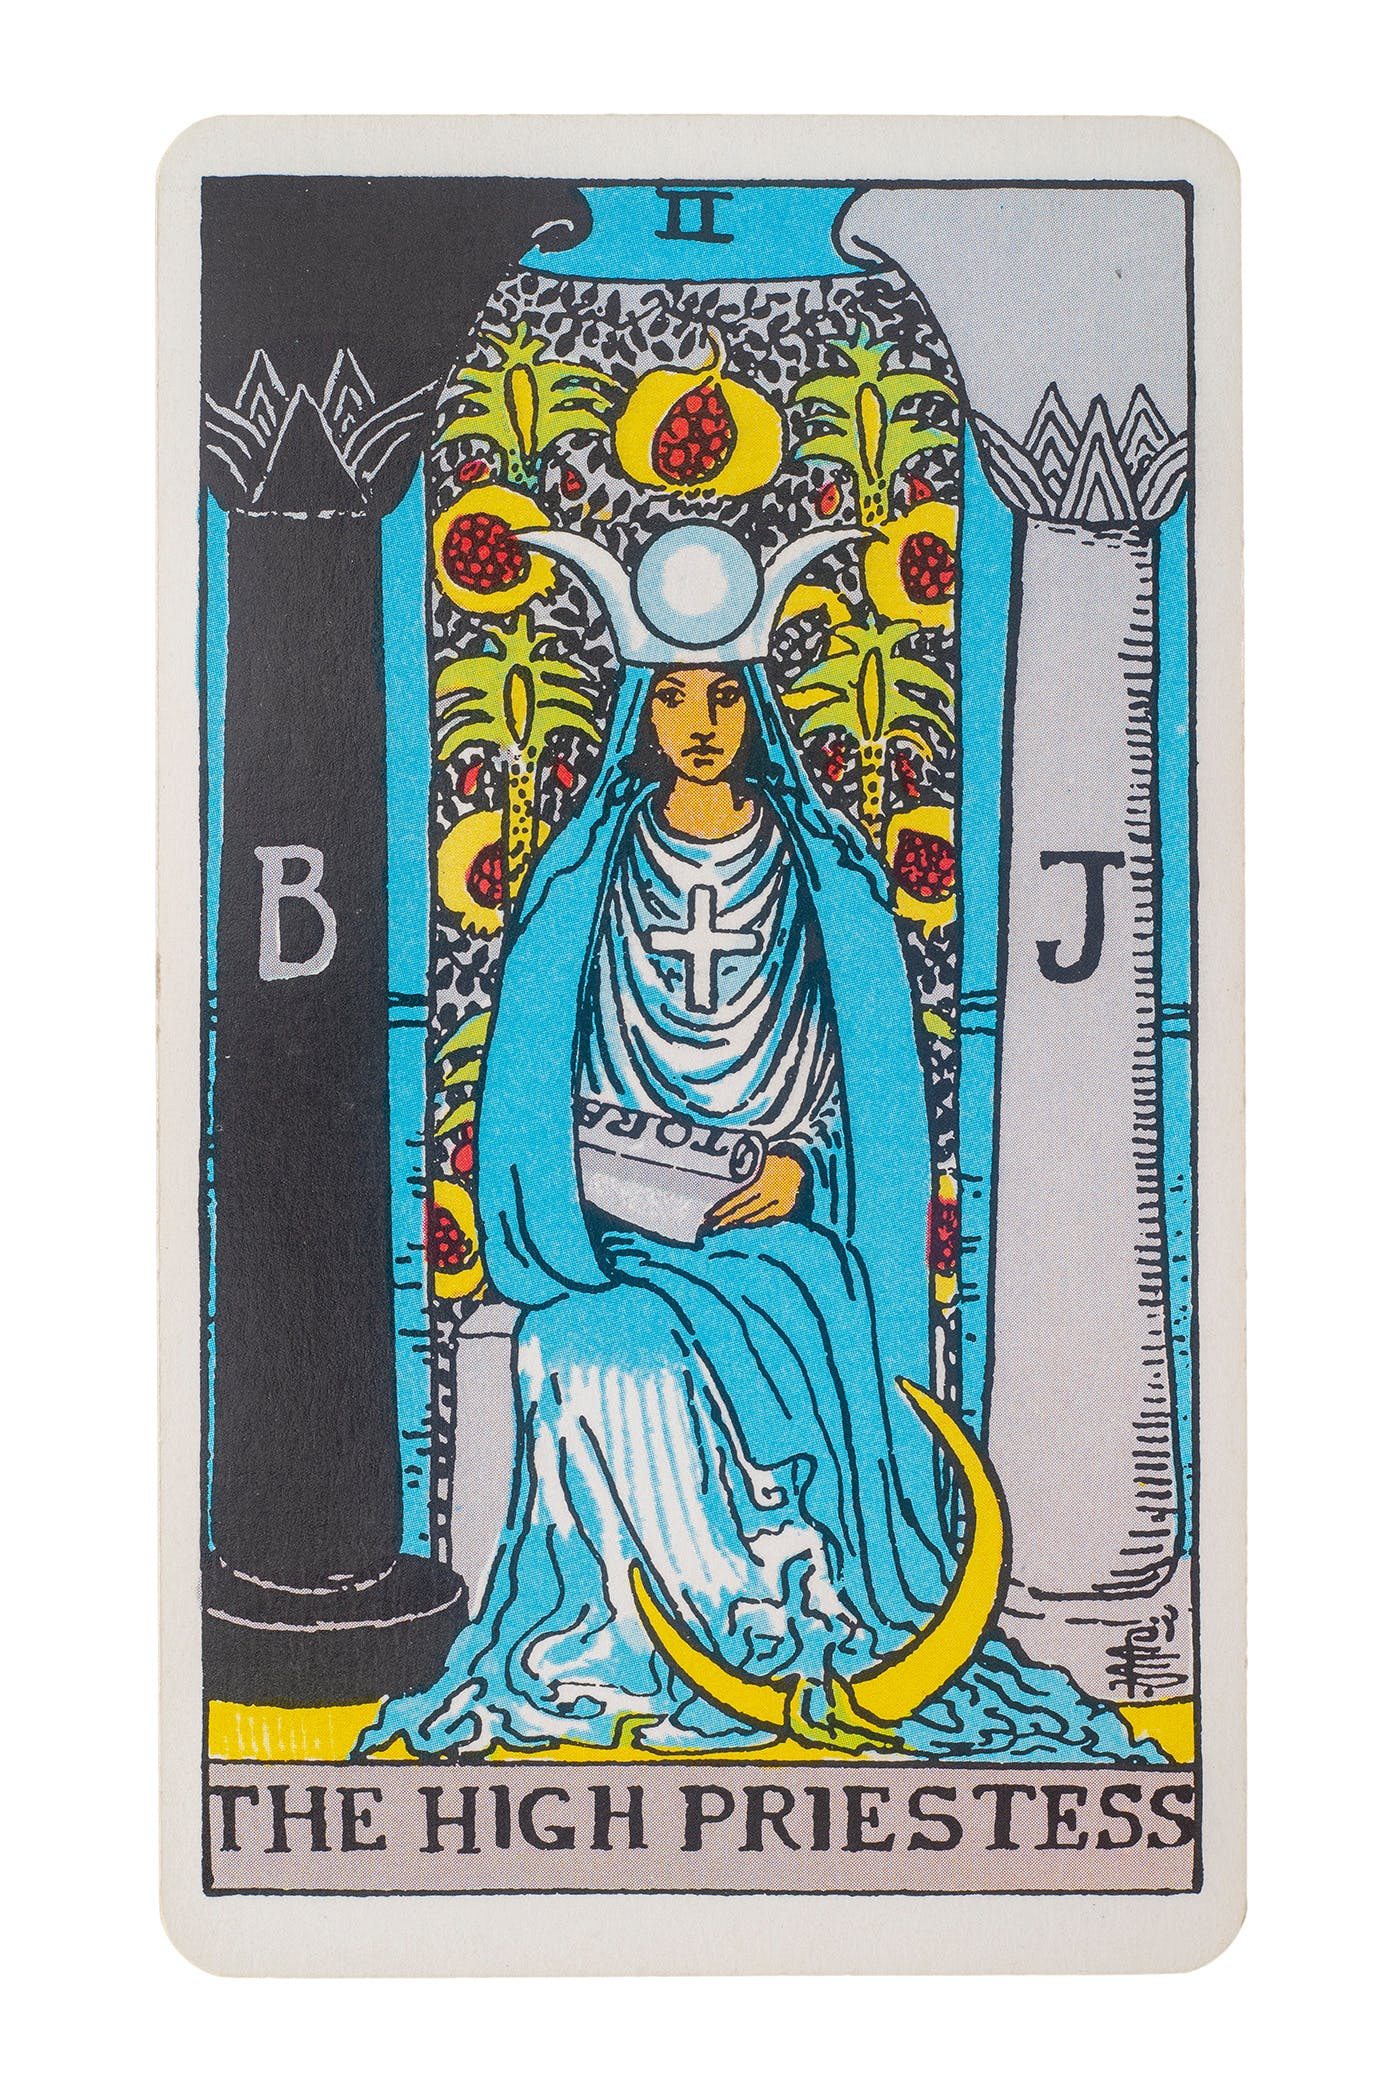 The High Priestess card. Features a women sitting in between two pillars with the moon at her feet.